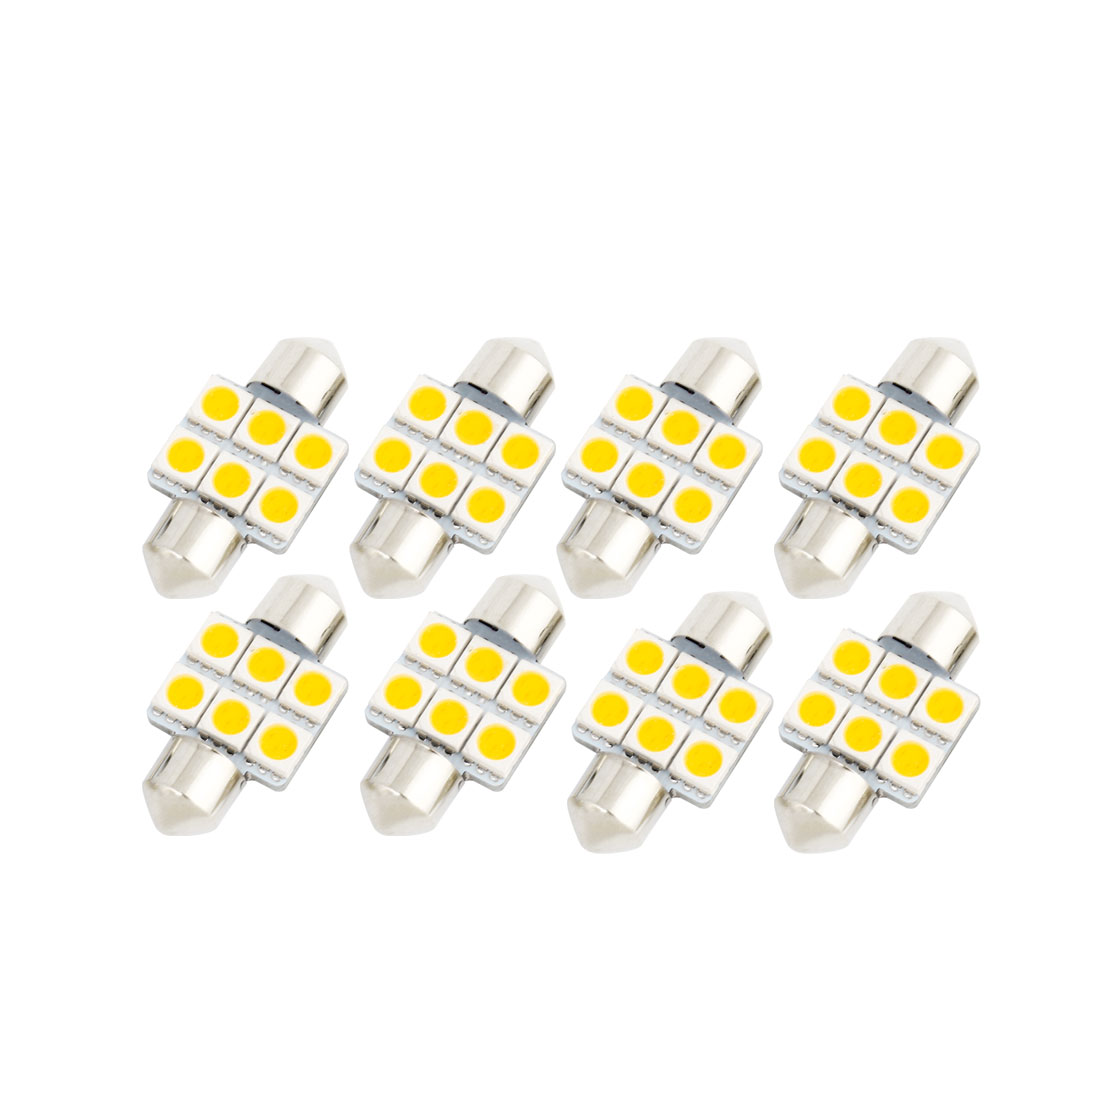 8 Pcs 31mm 5050 SMD 6 LED Warm White Festoon Dome Map Reading Light DE3175 DE3022 DE3021 Internal